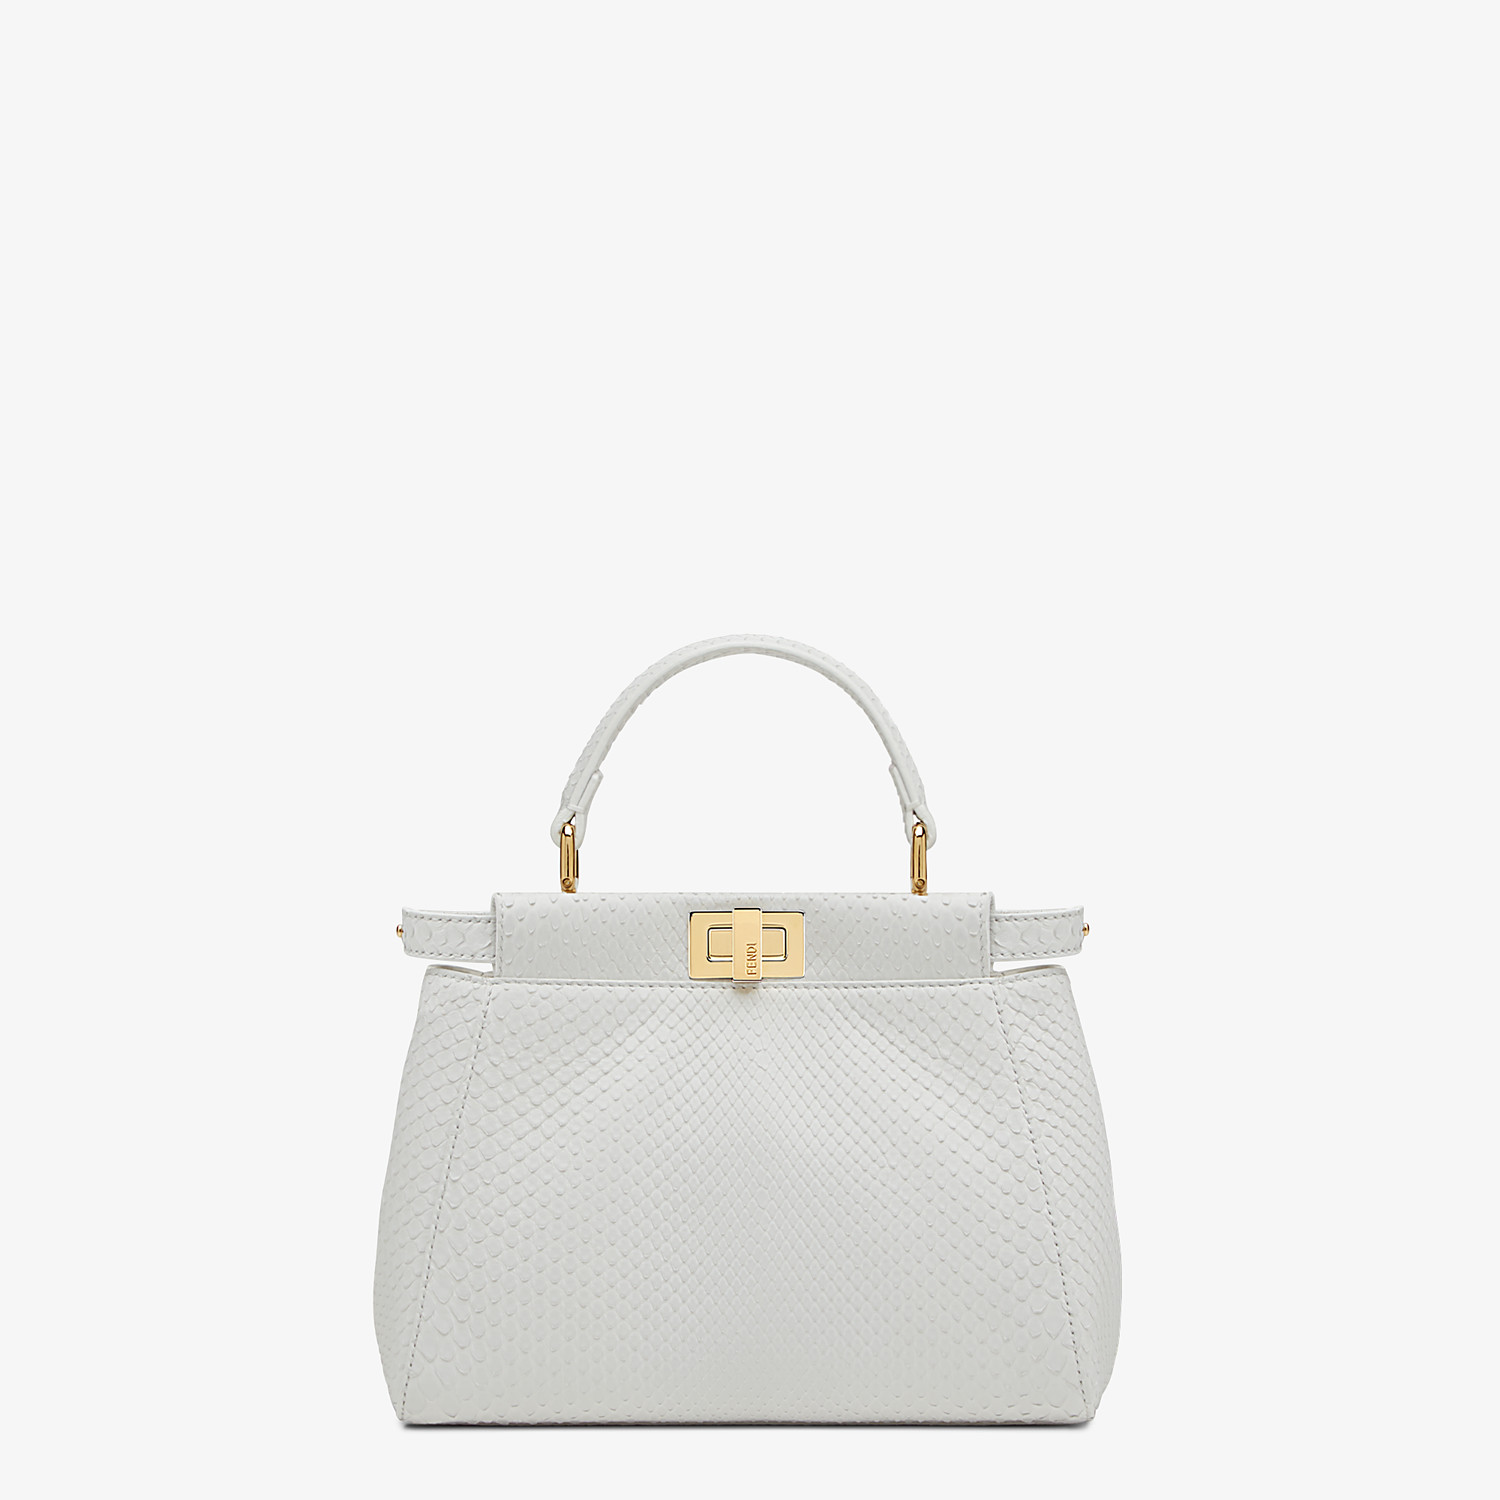 FENDI PEEKABOO ICONIC MINI - White python leather bag - view 1 detail